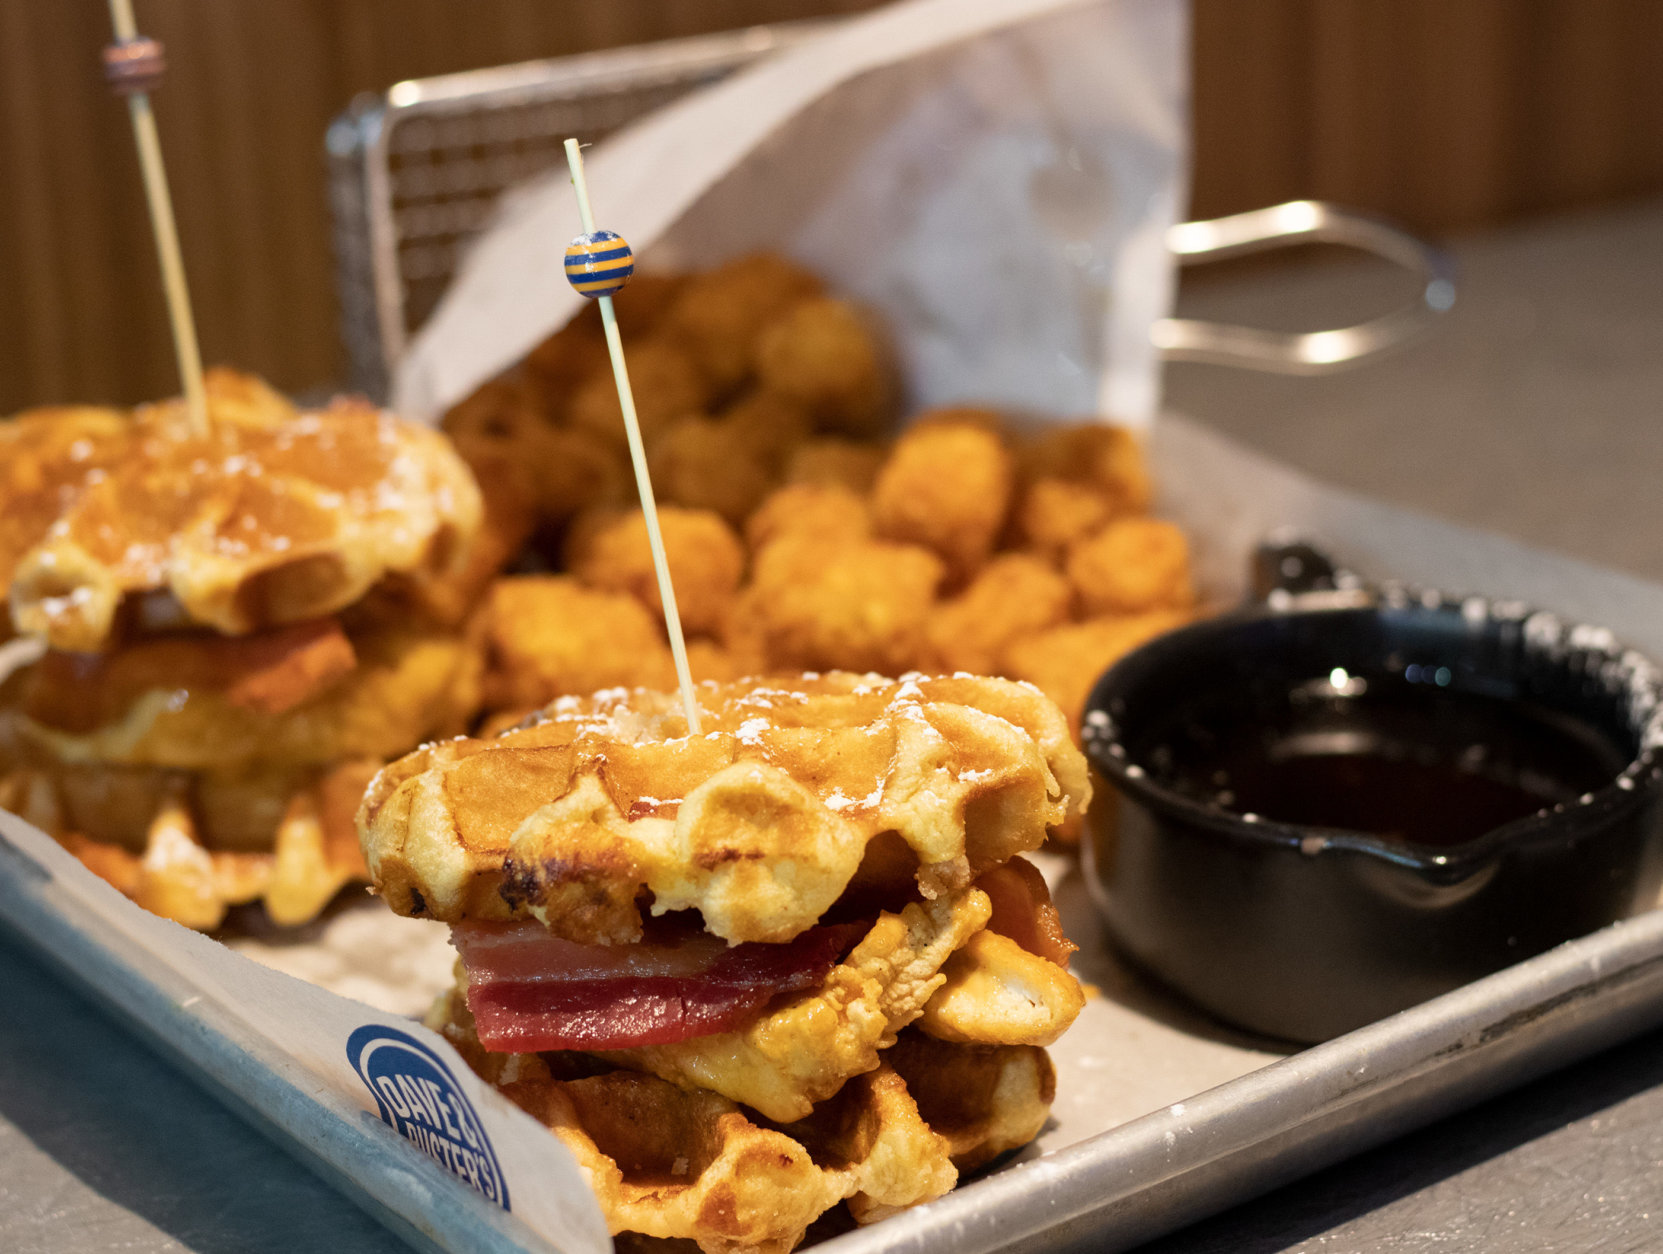 Dave and Buster's Chicken and Waffle Sliders